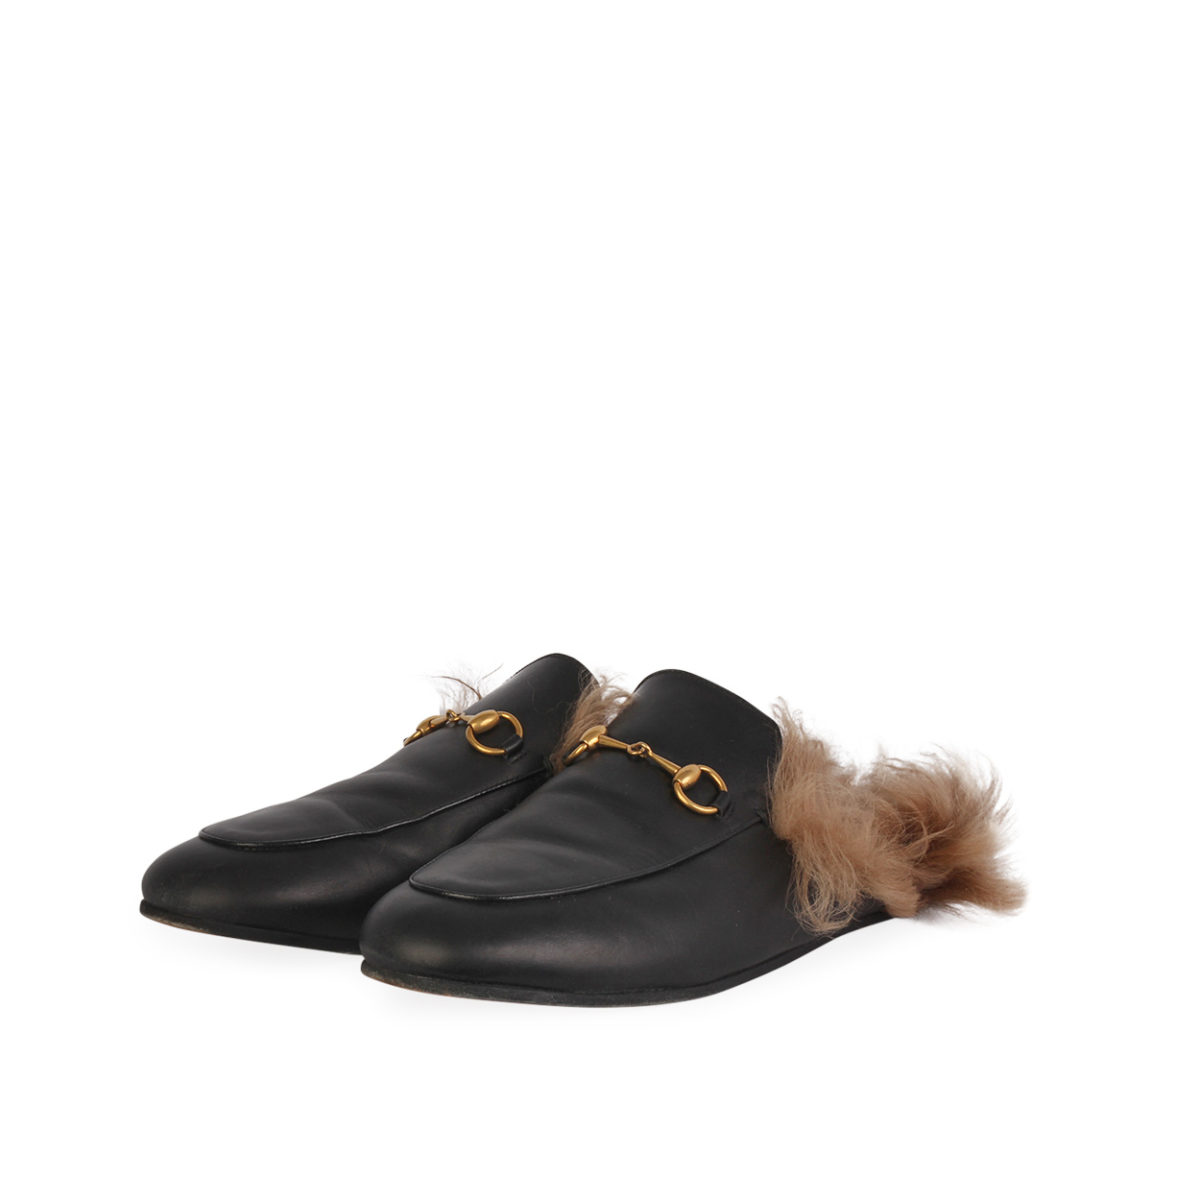 5a14c127e GUCCI Princetown Leather Slippers Black - S  40 (6.5)